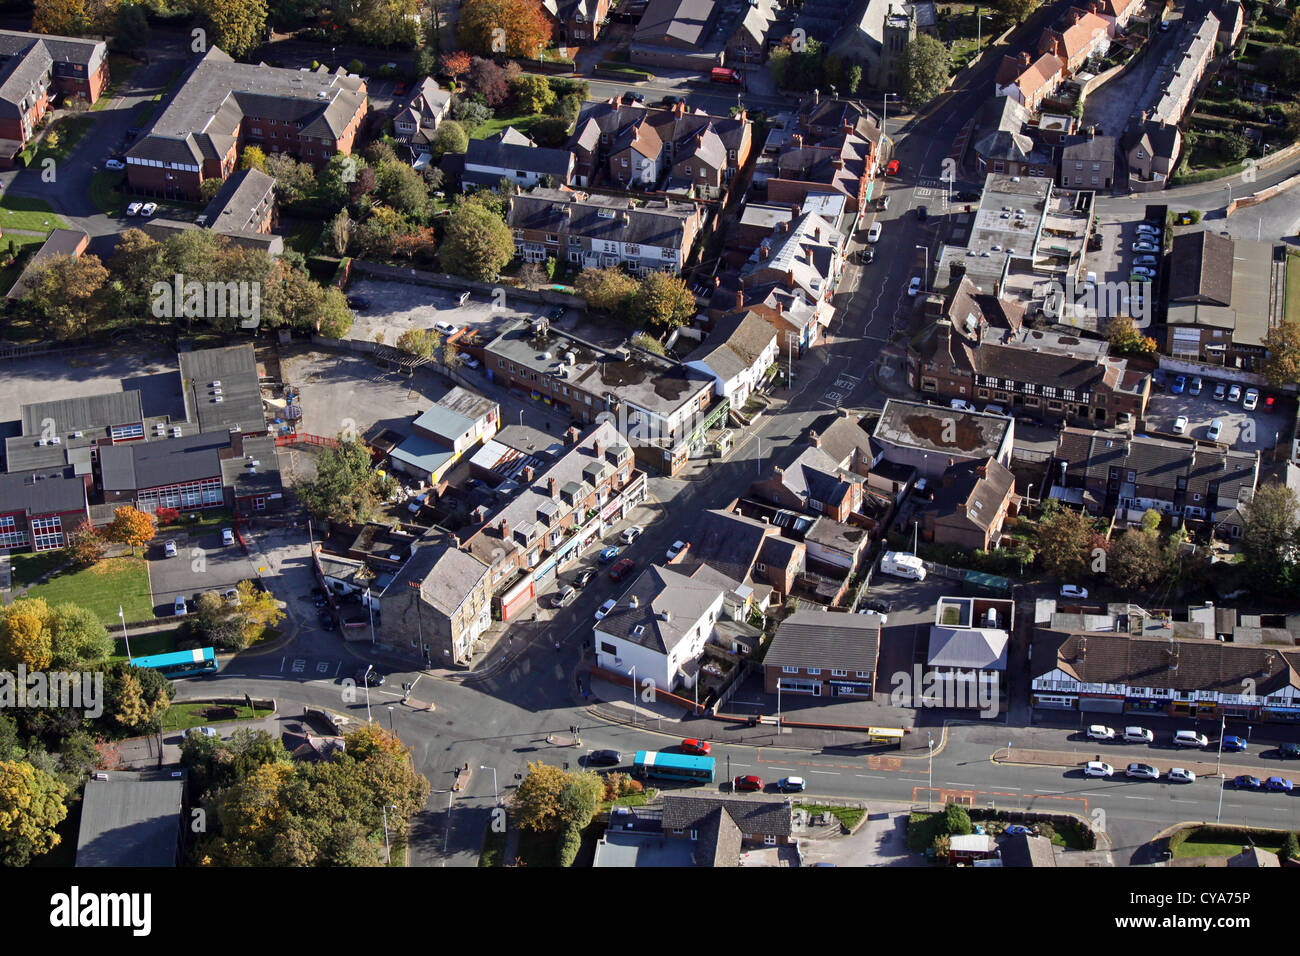 aerial view of Upton on the Wirral, Merseyside - Stock Image